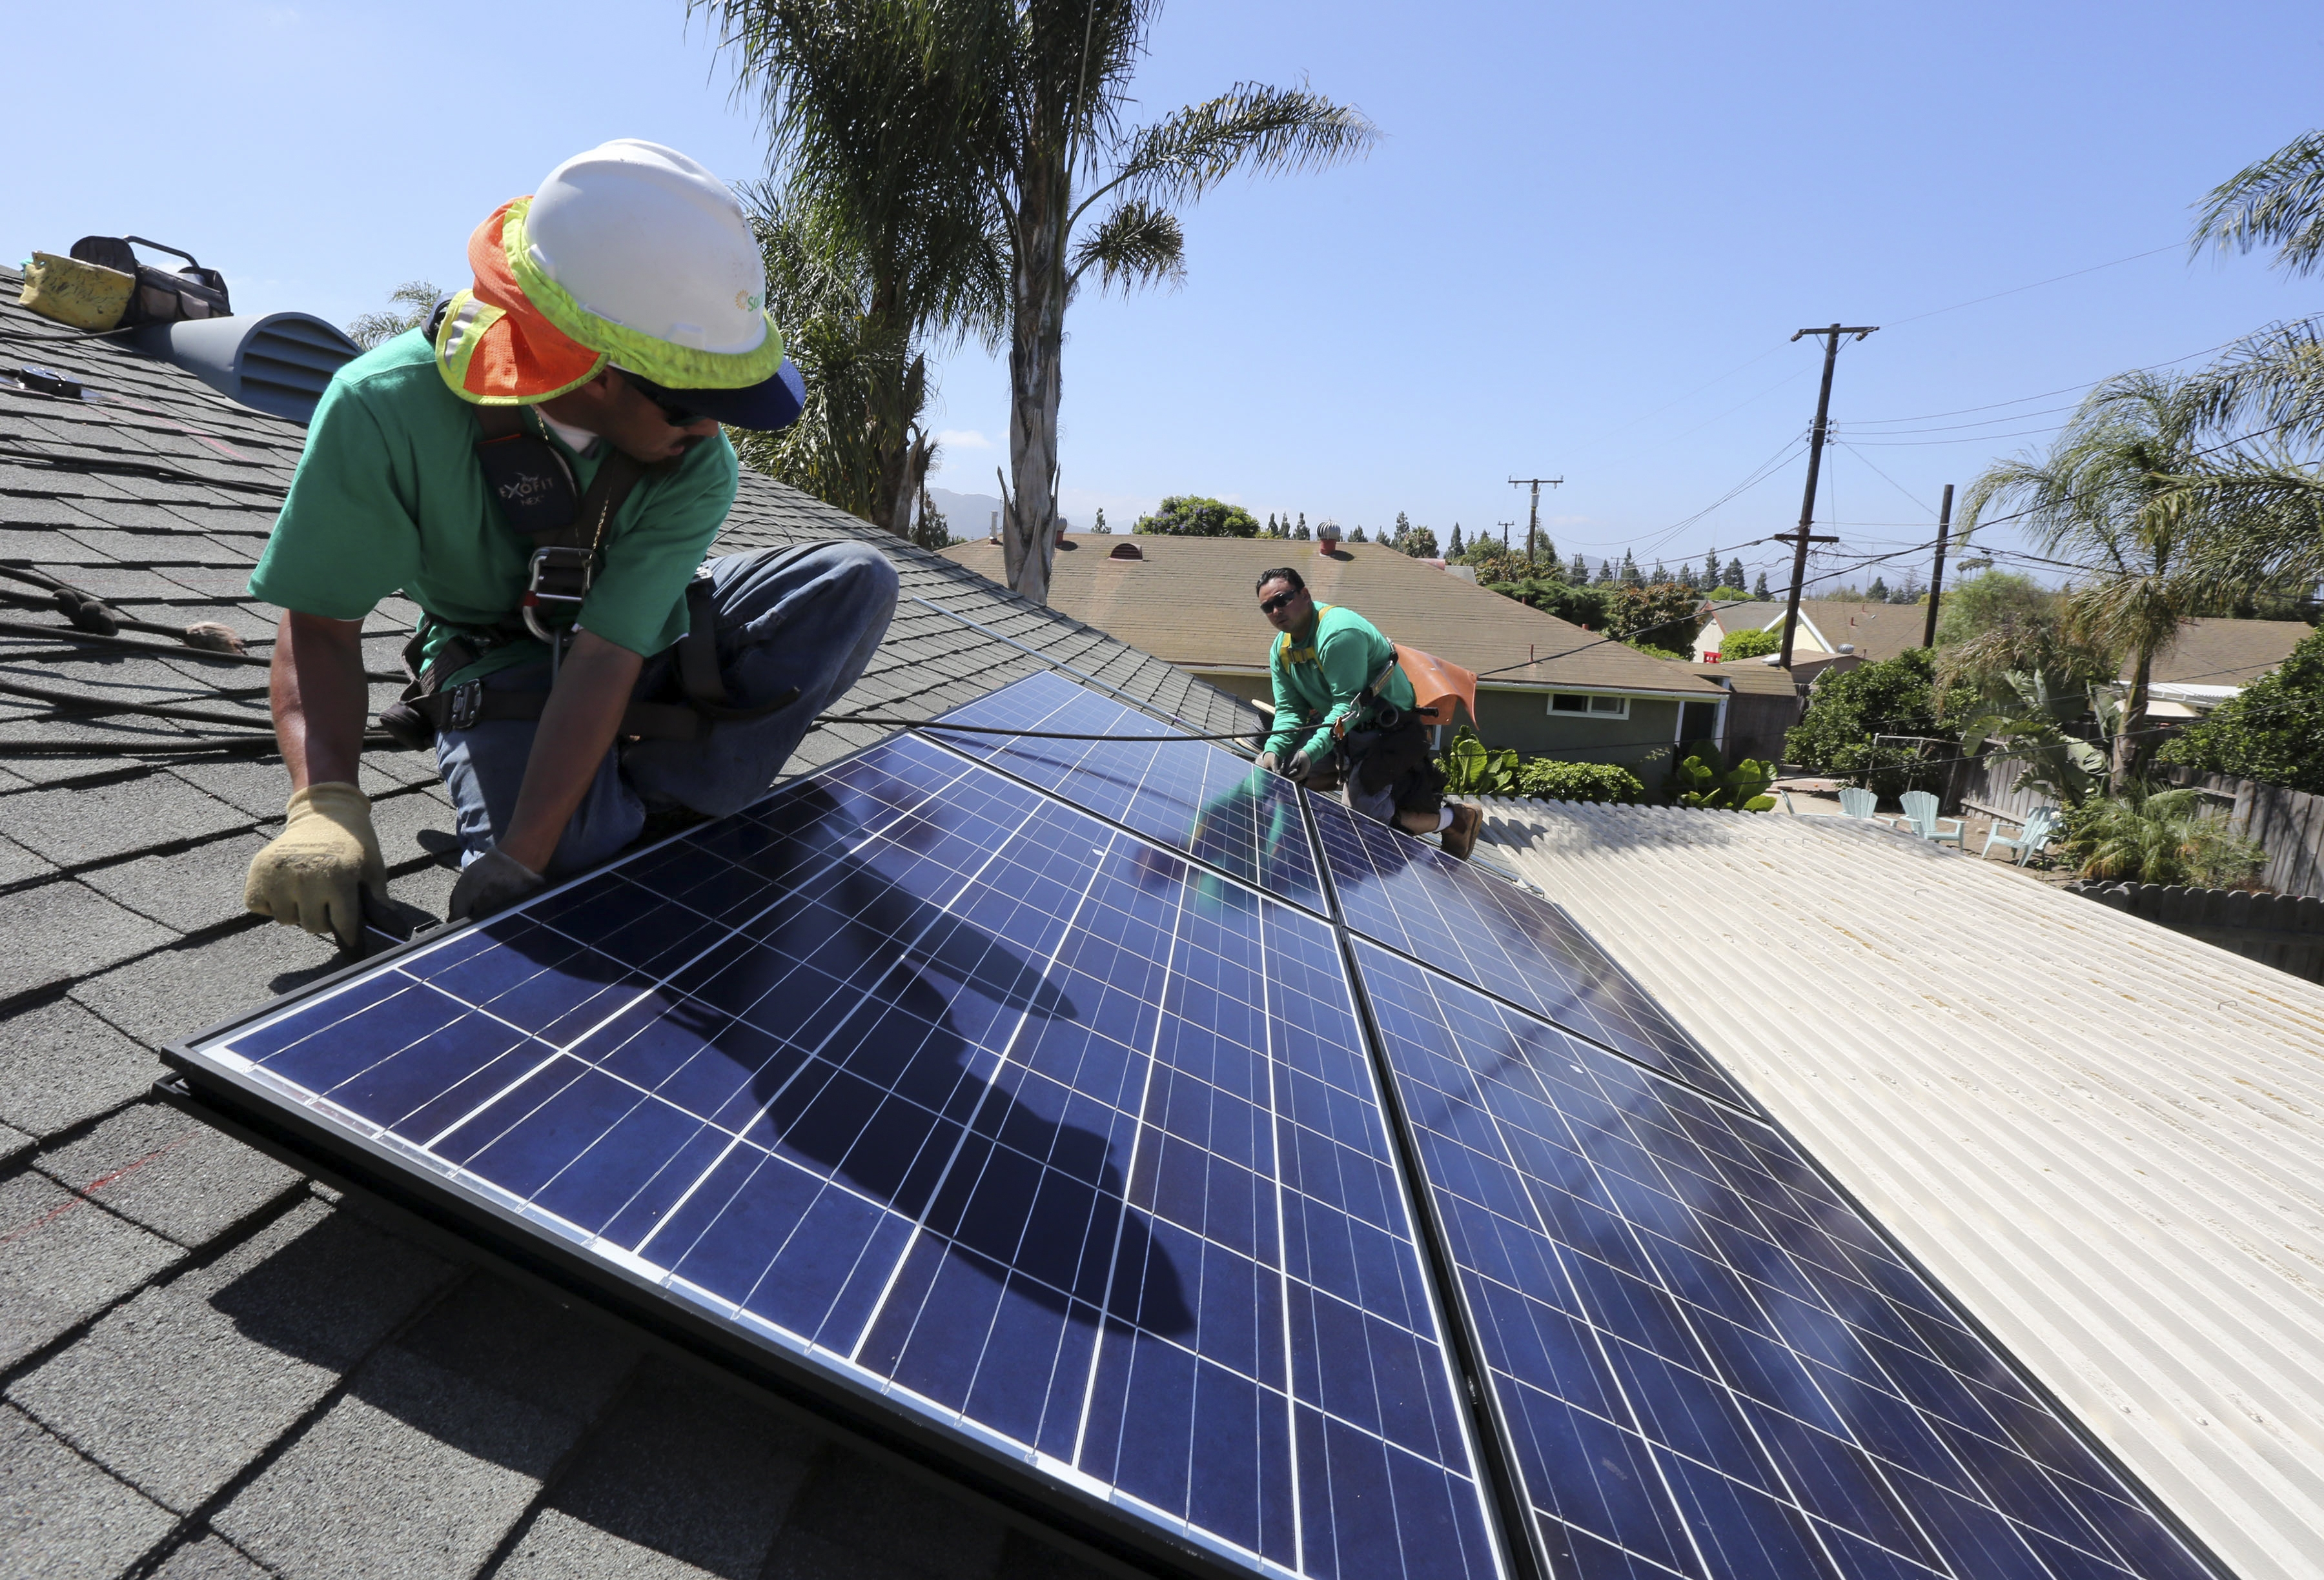 Workers from SolarCity install solar panels on a home in Camarillo, Calif. (J. Emilio Flores/The New York Times)